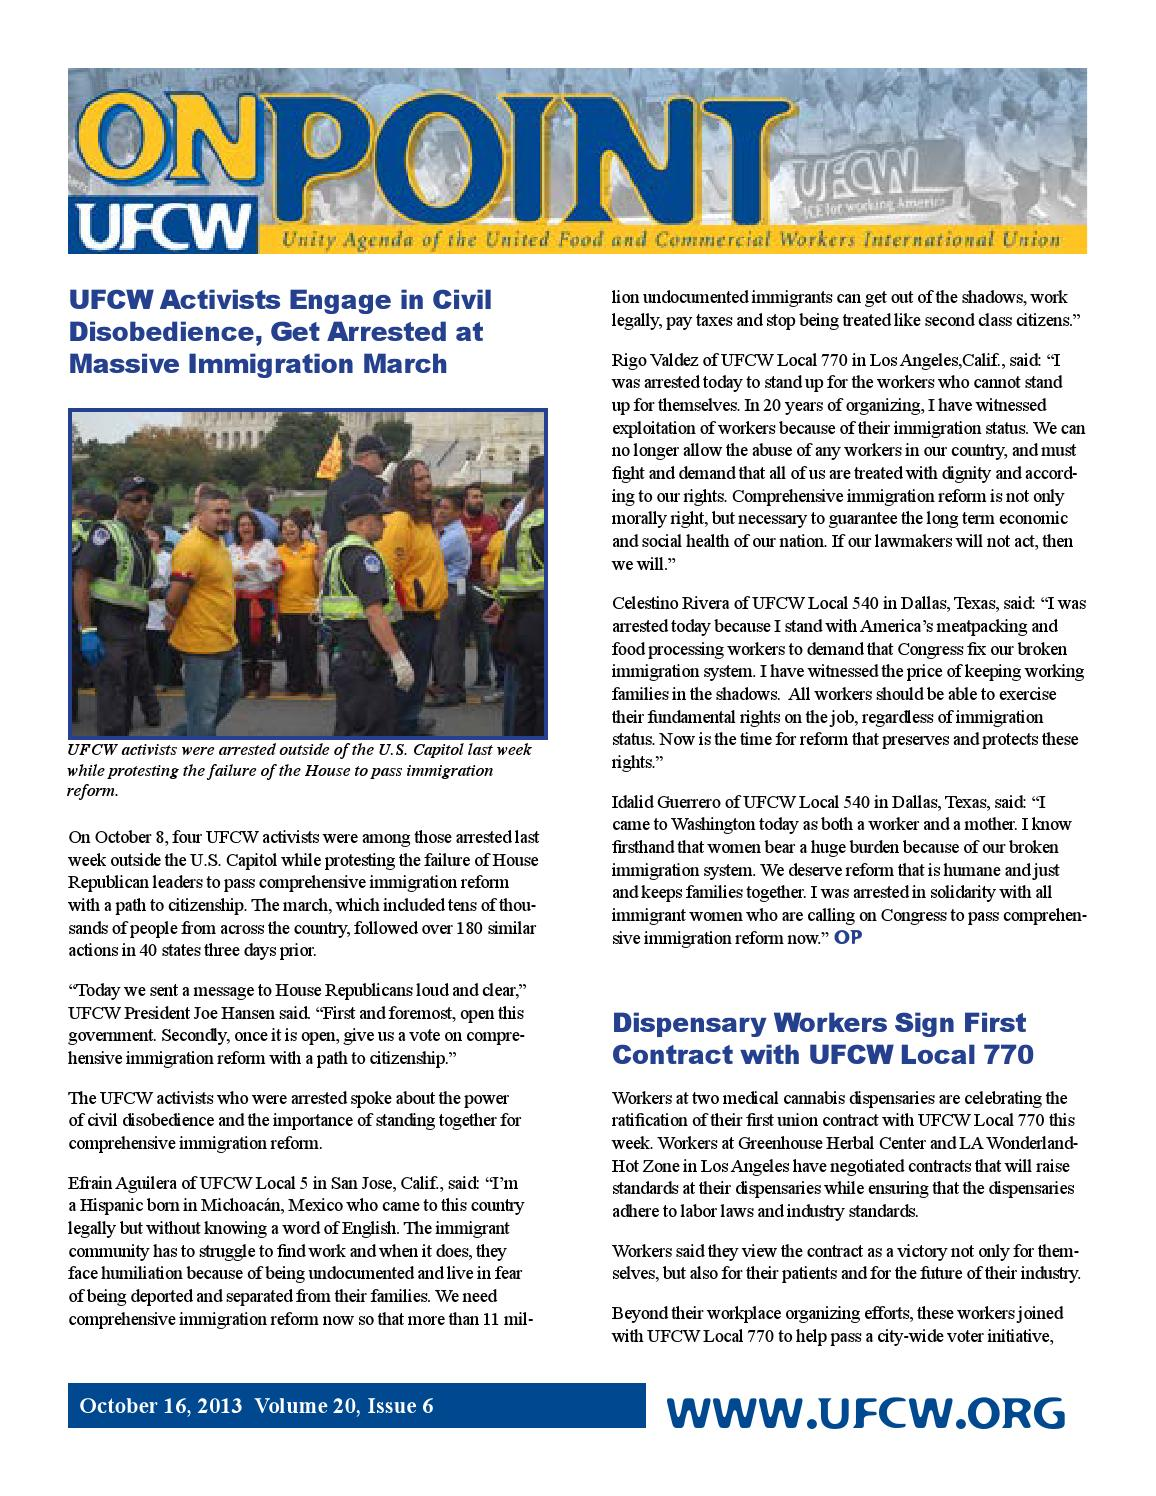 On Point Vol 20, Issue 6 by UFCW Local 1059 - issuu